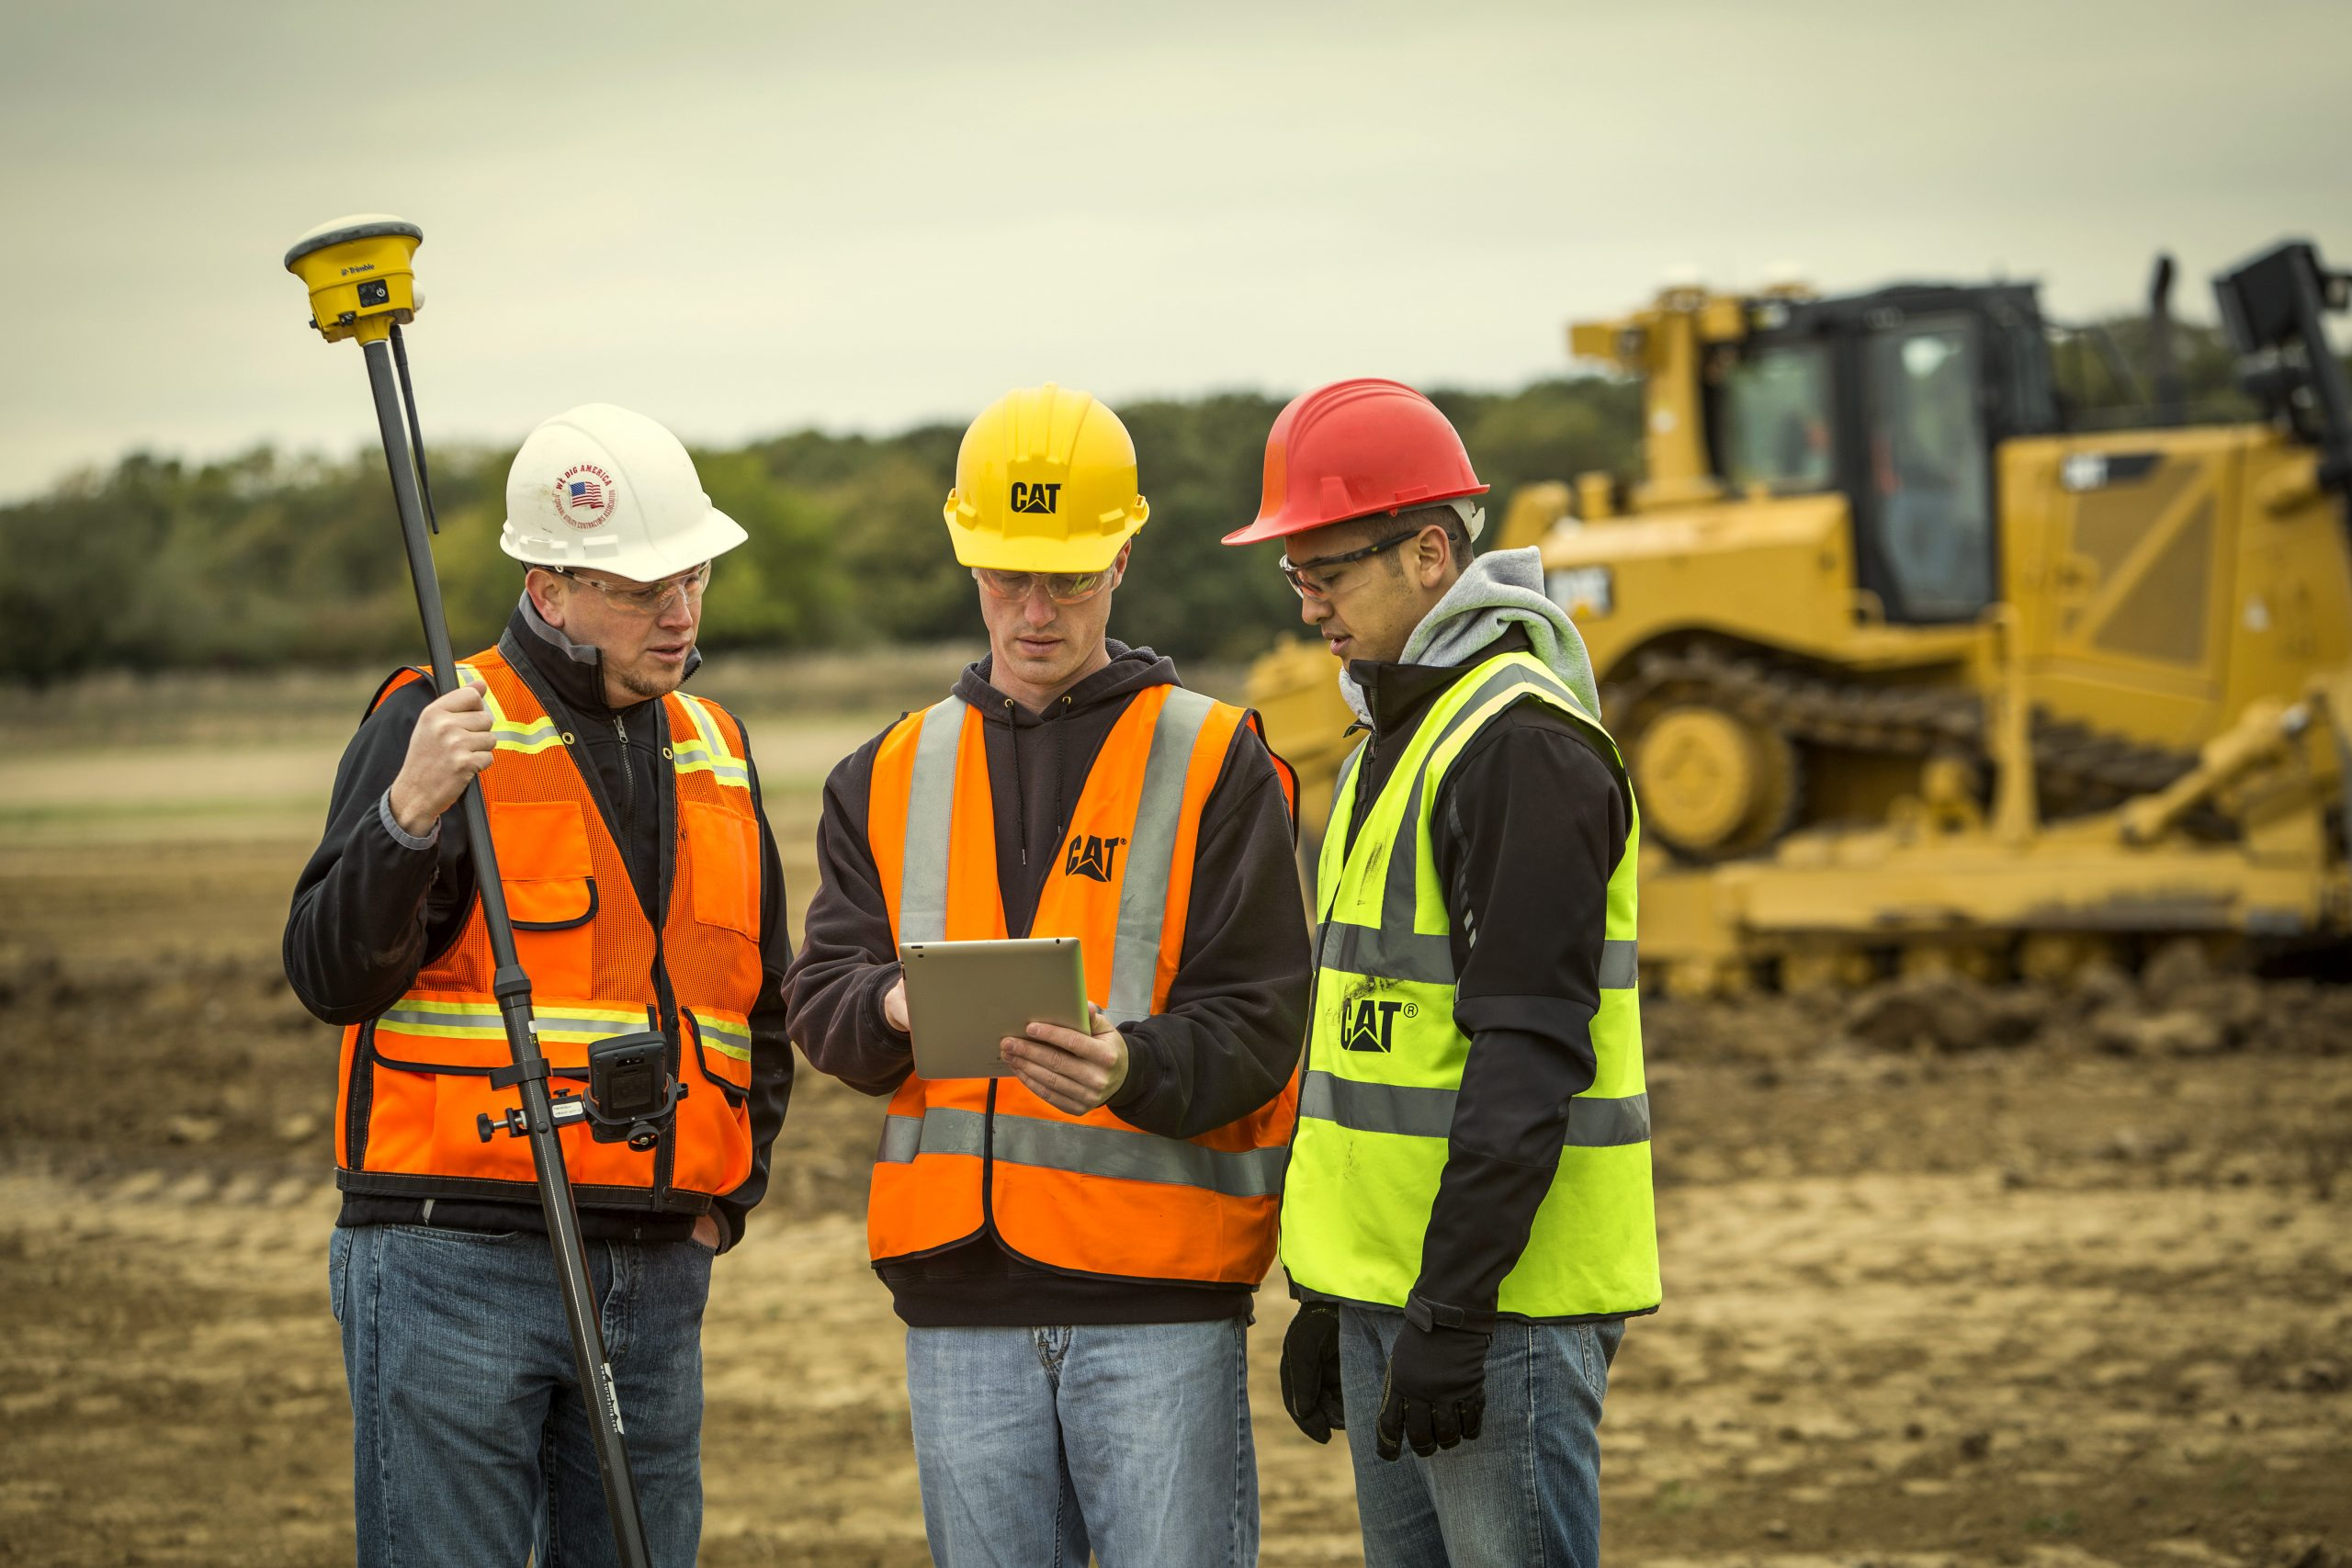 3 construction workers talking in front of CAT construction equipment